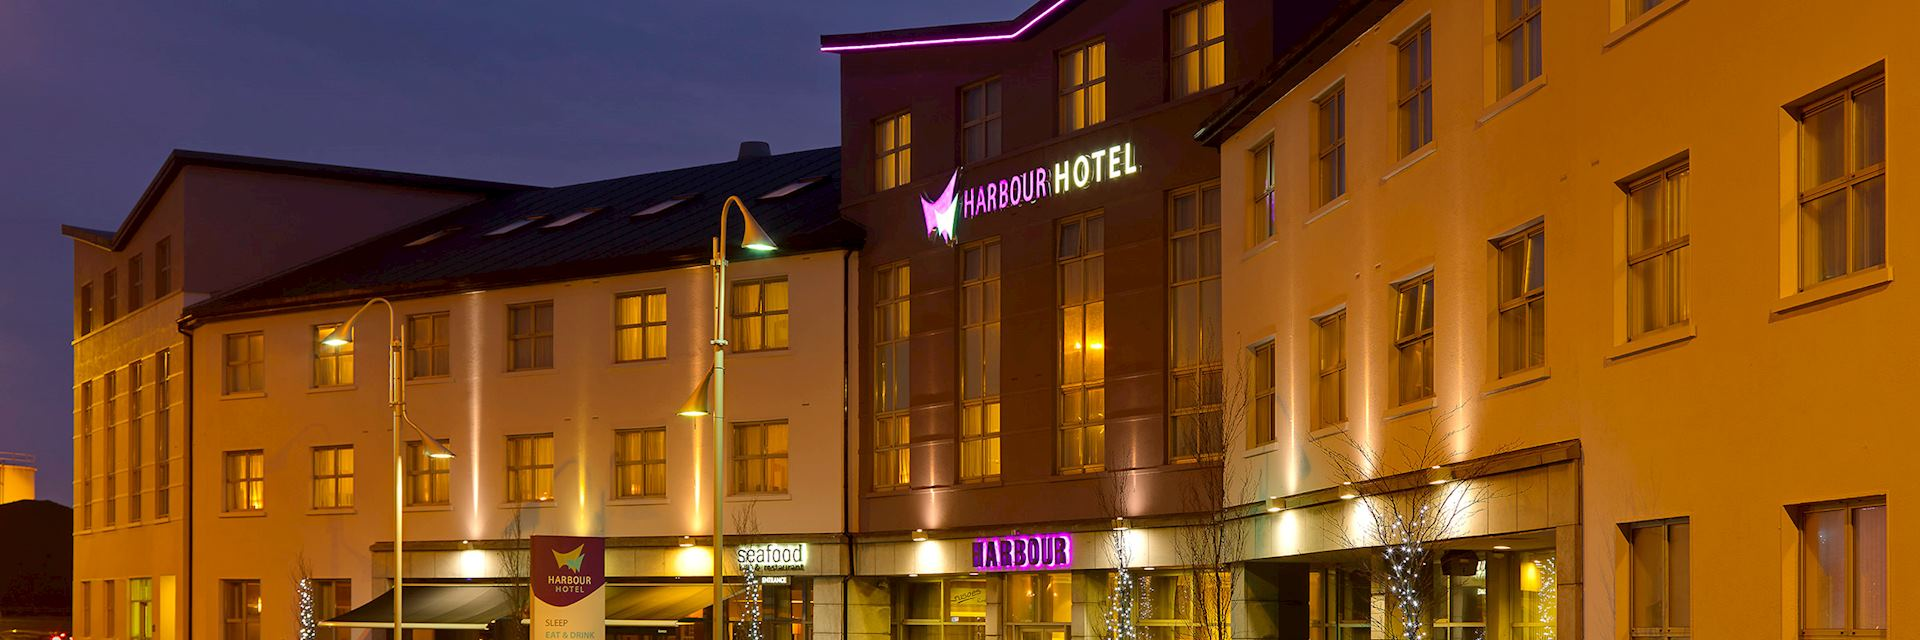 Harbour Hotel, Galway